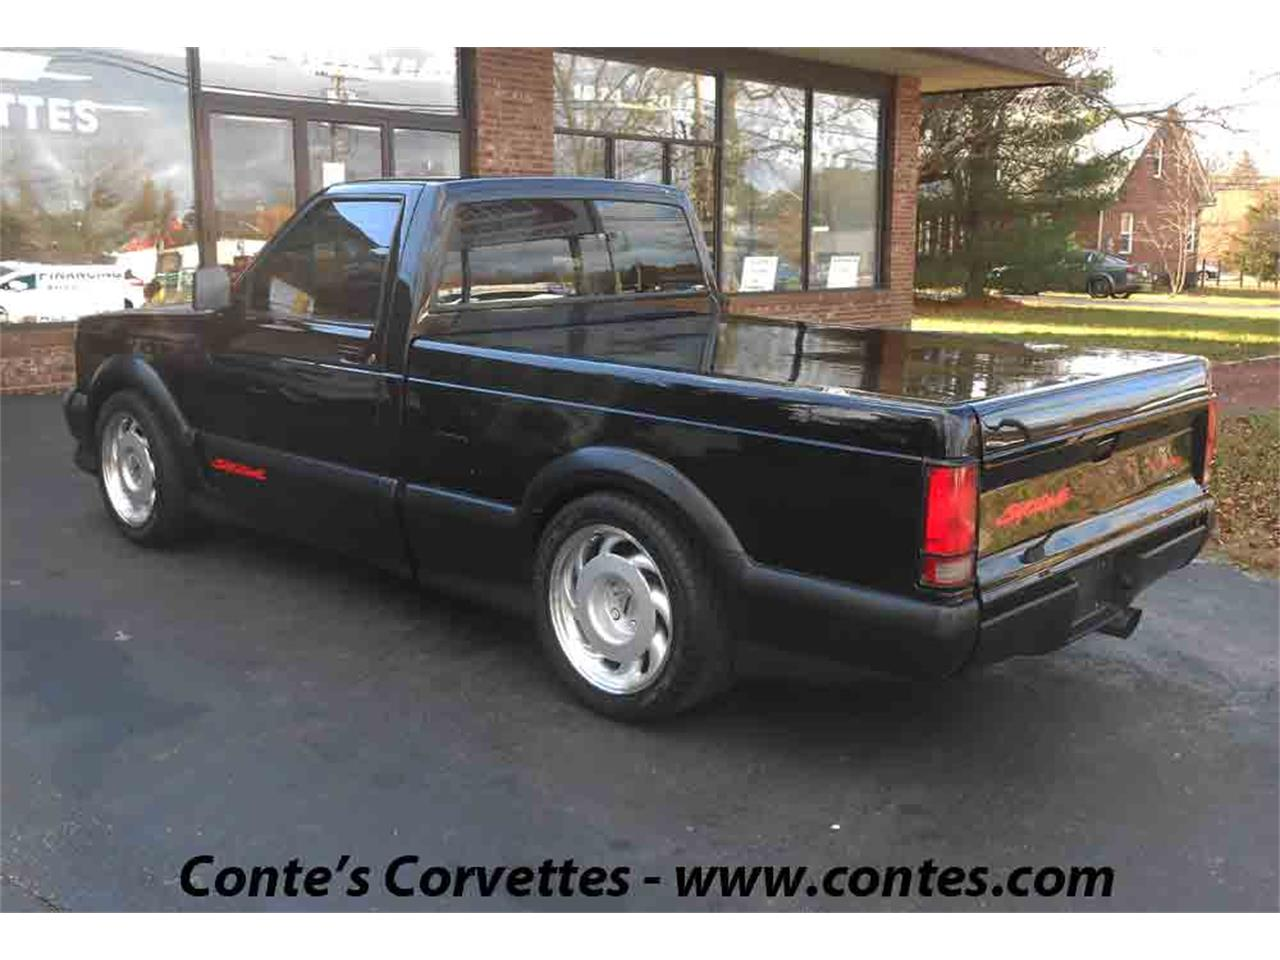 For Sale: 1991 GMC Syclone in VINELAND, New Jersey